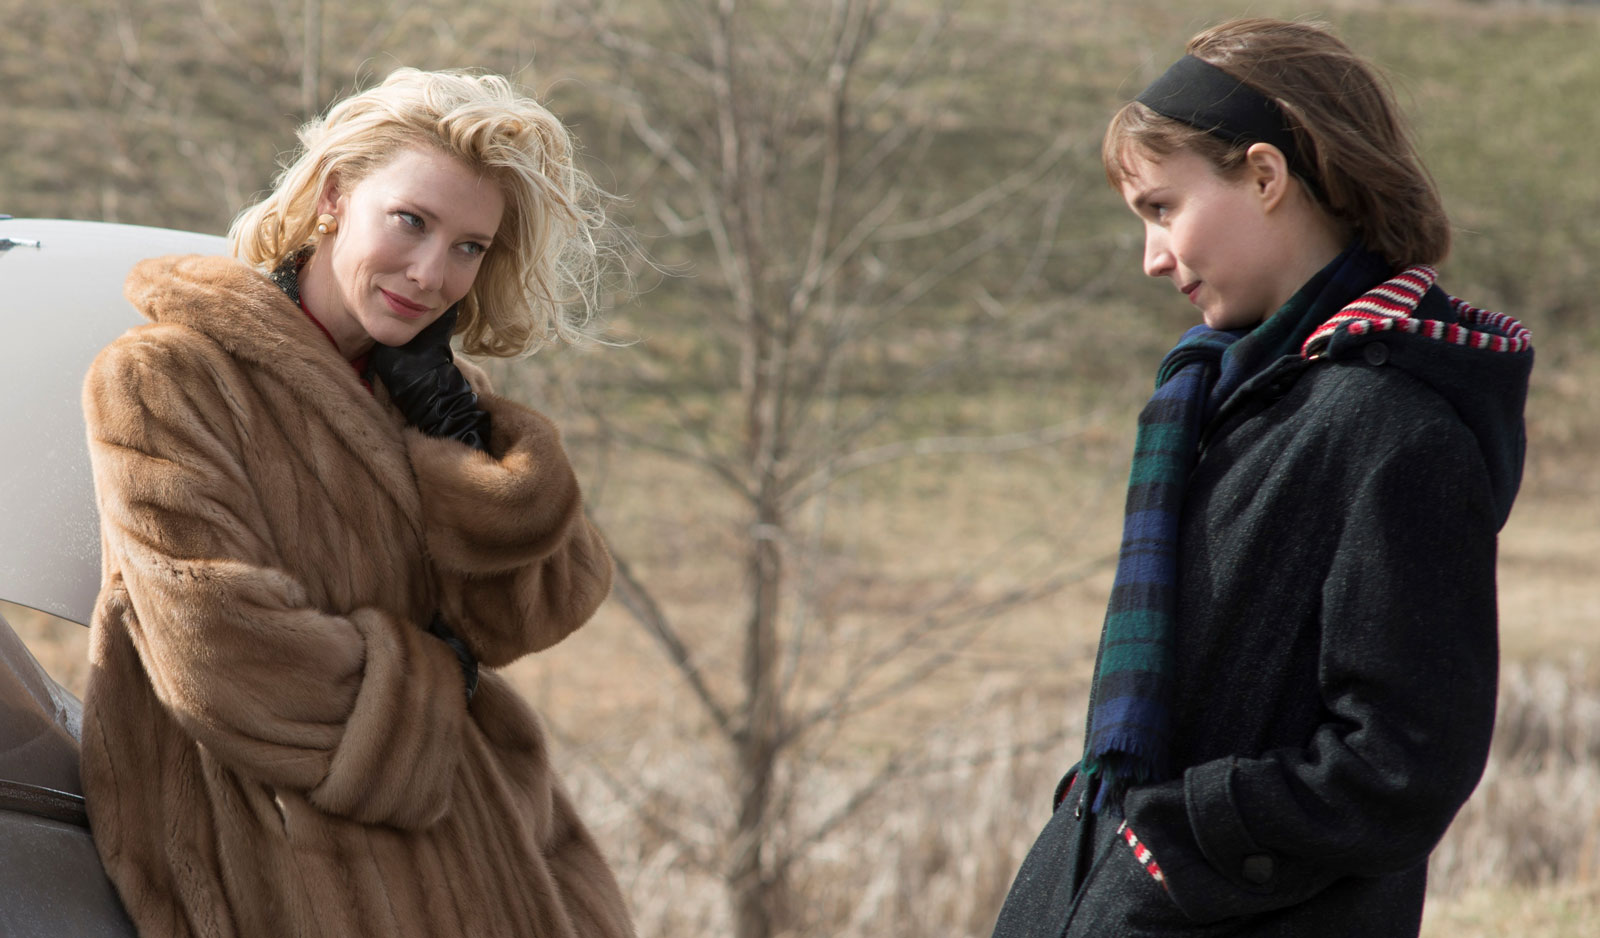 Cate Blanchett and Rooney Mara in Carol (2015)